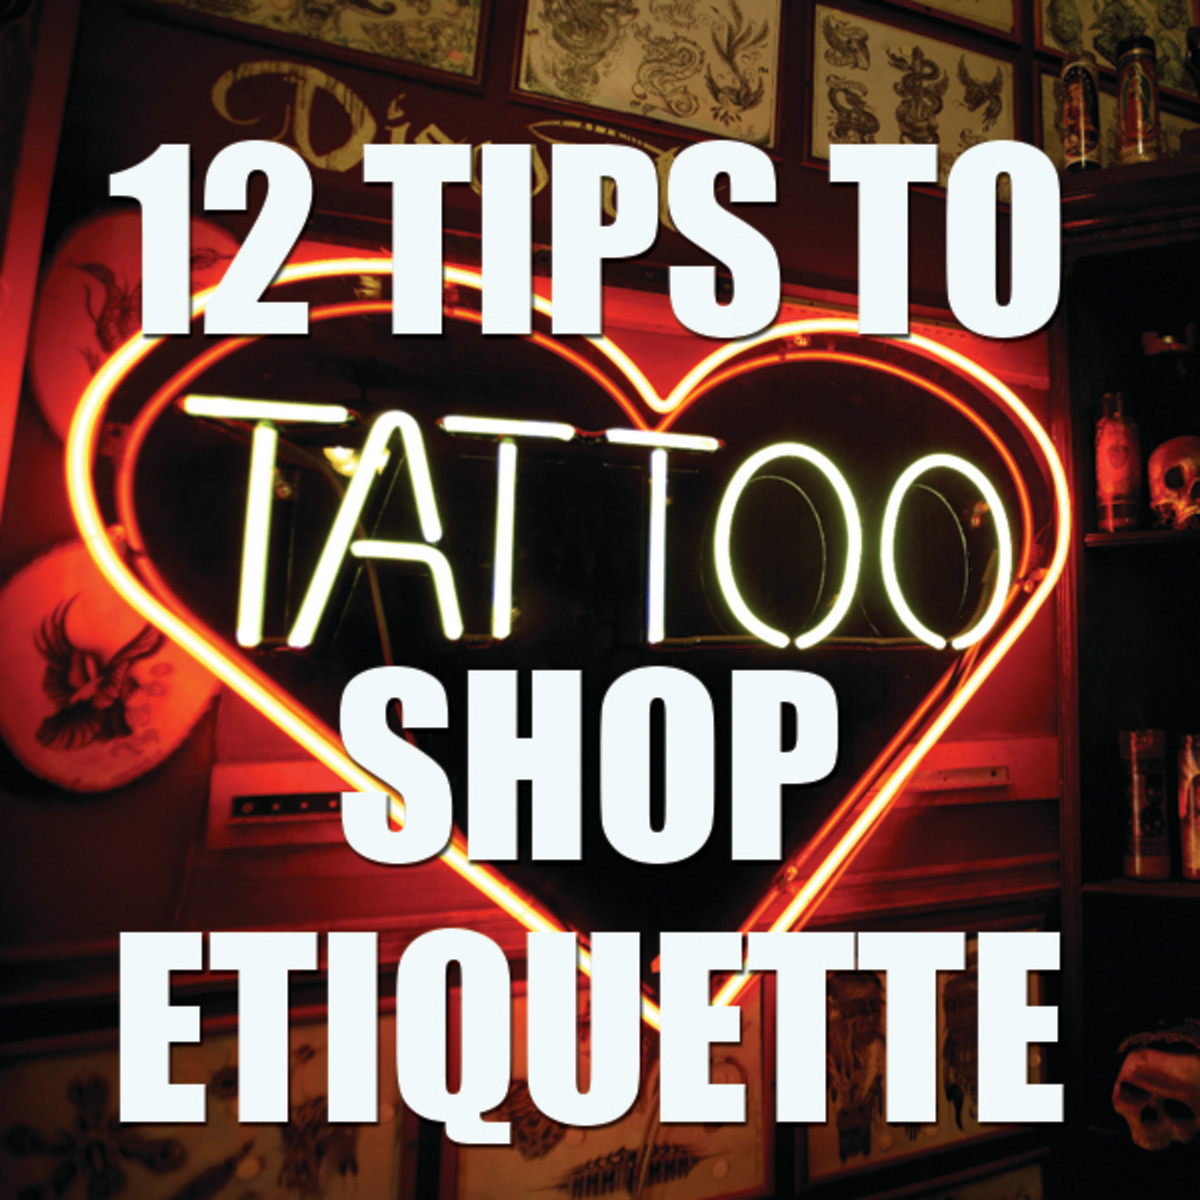 20c06d99eed3b 12 Tips For Tattoo Shop Etiquette - Tattoo Ideas, Artists and Models